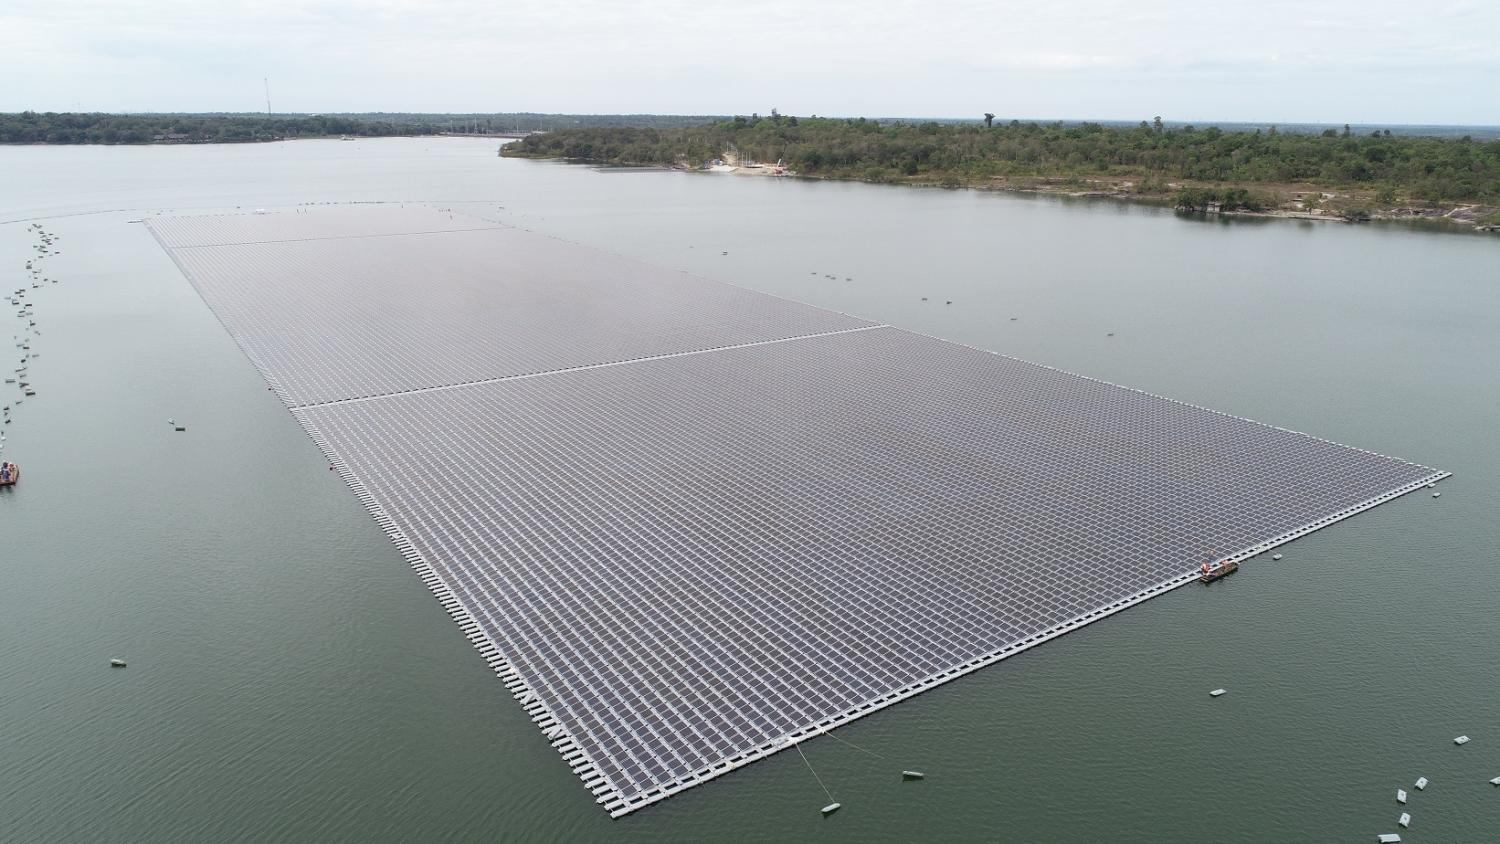 EGAT's floating solar power farm, with a capacity of 45 megawatts, at Sirindhorn Dam in Ubon Ratchathani province.